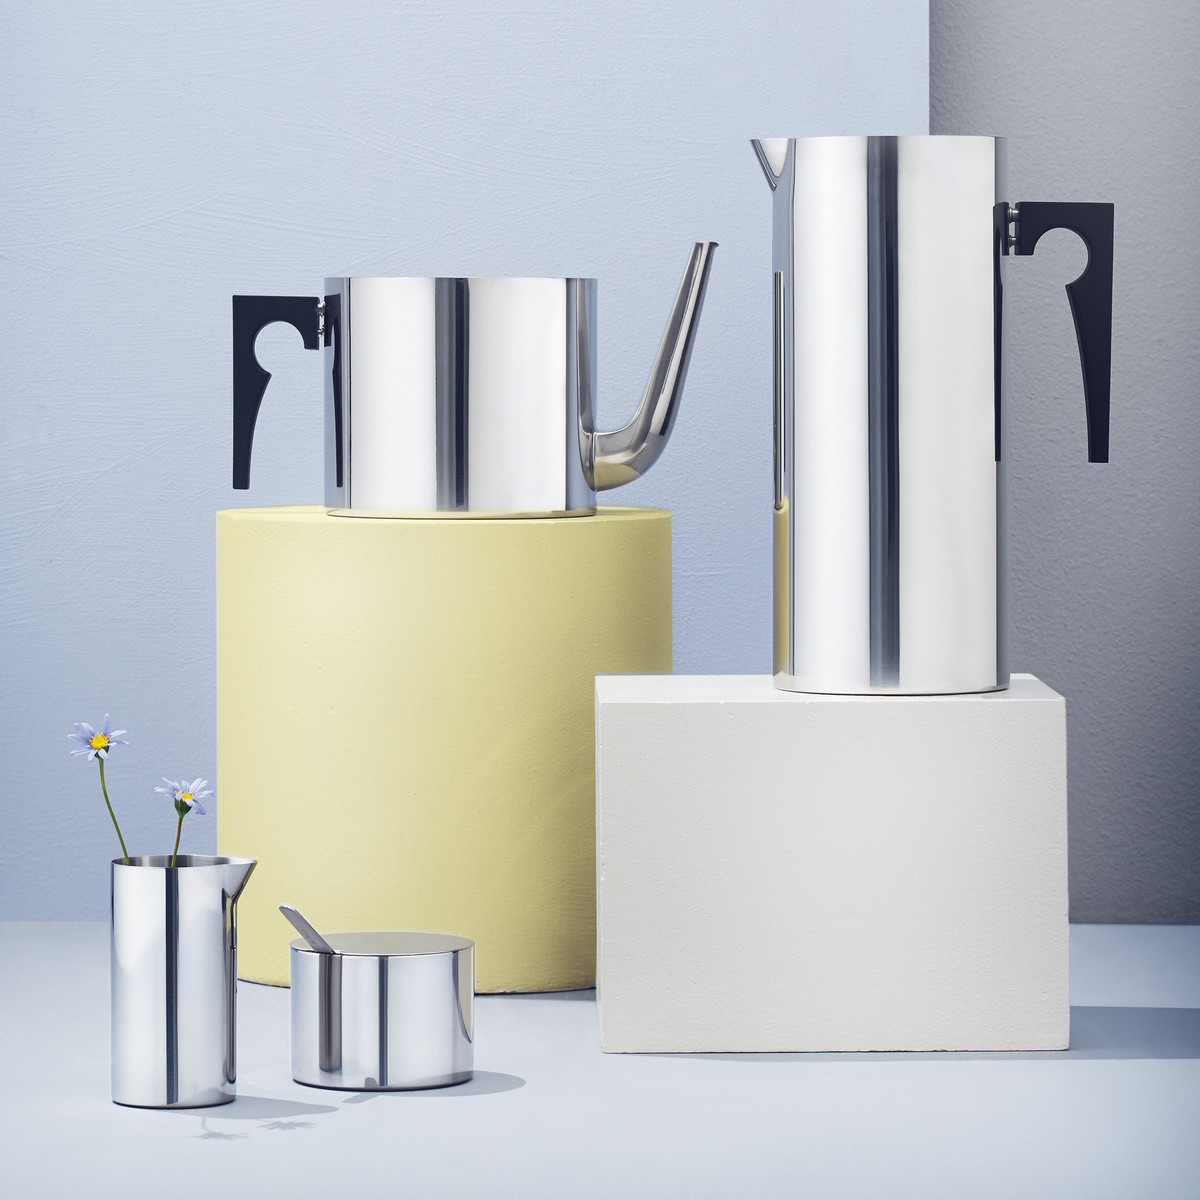 Stelton - Kitchenware Cylinda Tea pot, ice stopper jug, milk and sugar bowl in stainless steel